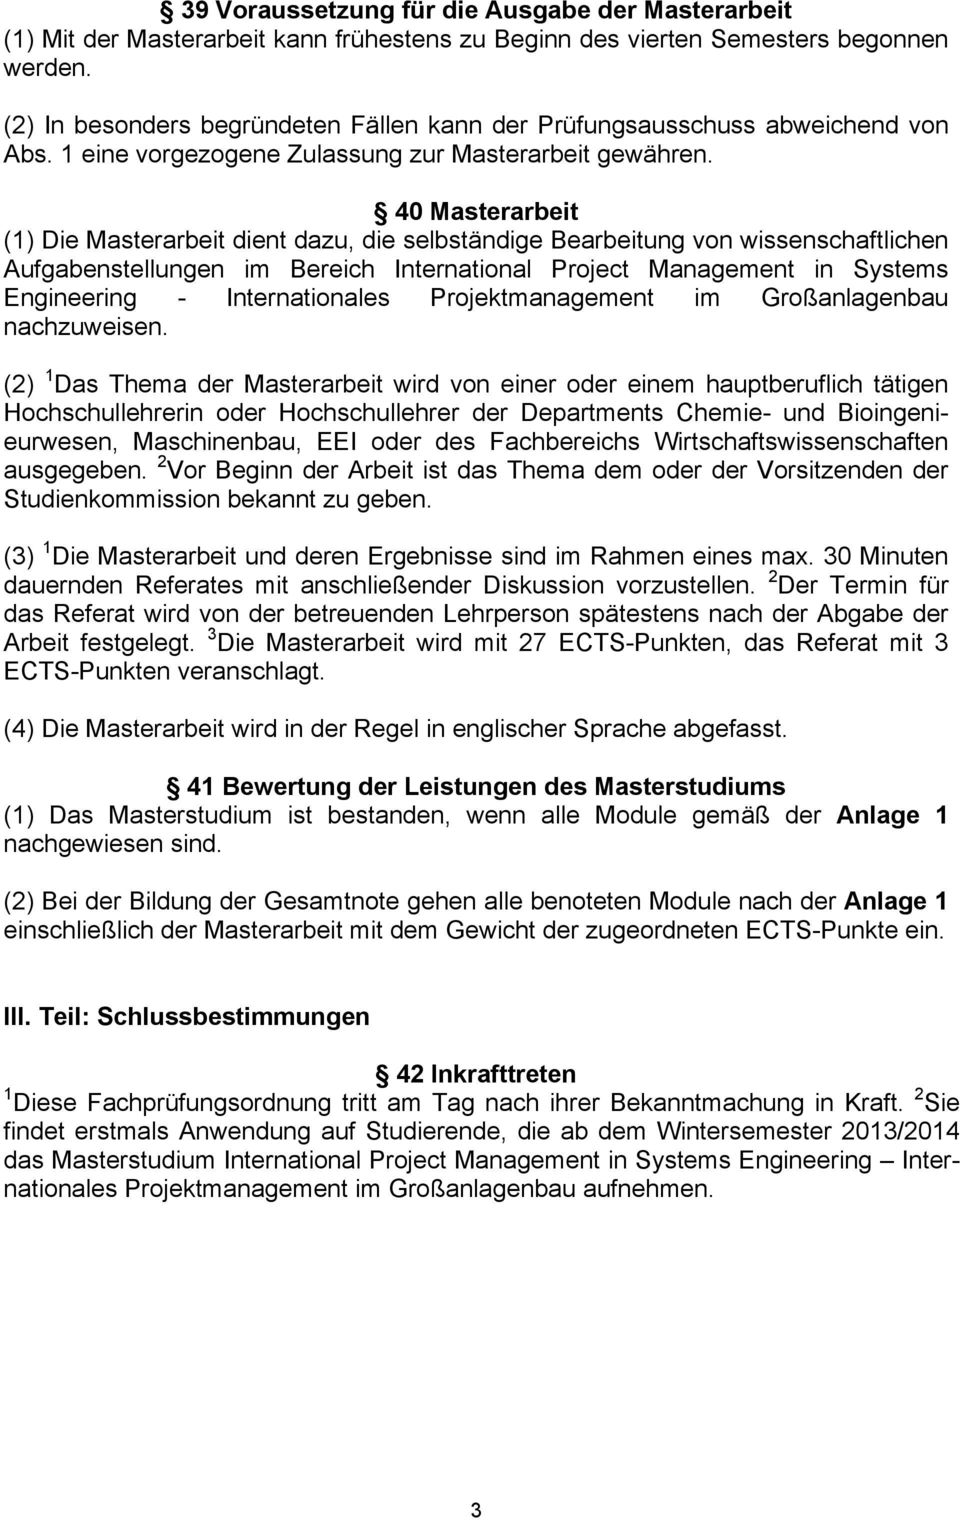 40 Masterarbeit (1) Die Masterarbeit dient dazu, die selbständige Bearbeitung von wissenschaftlichen Aufgabenstellungen im Bereich International Project Management in Systems Engineering -